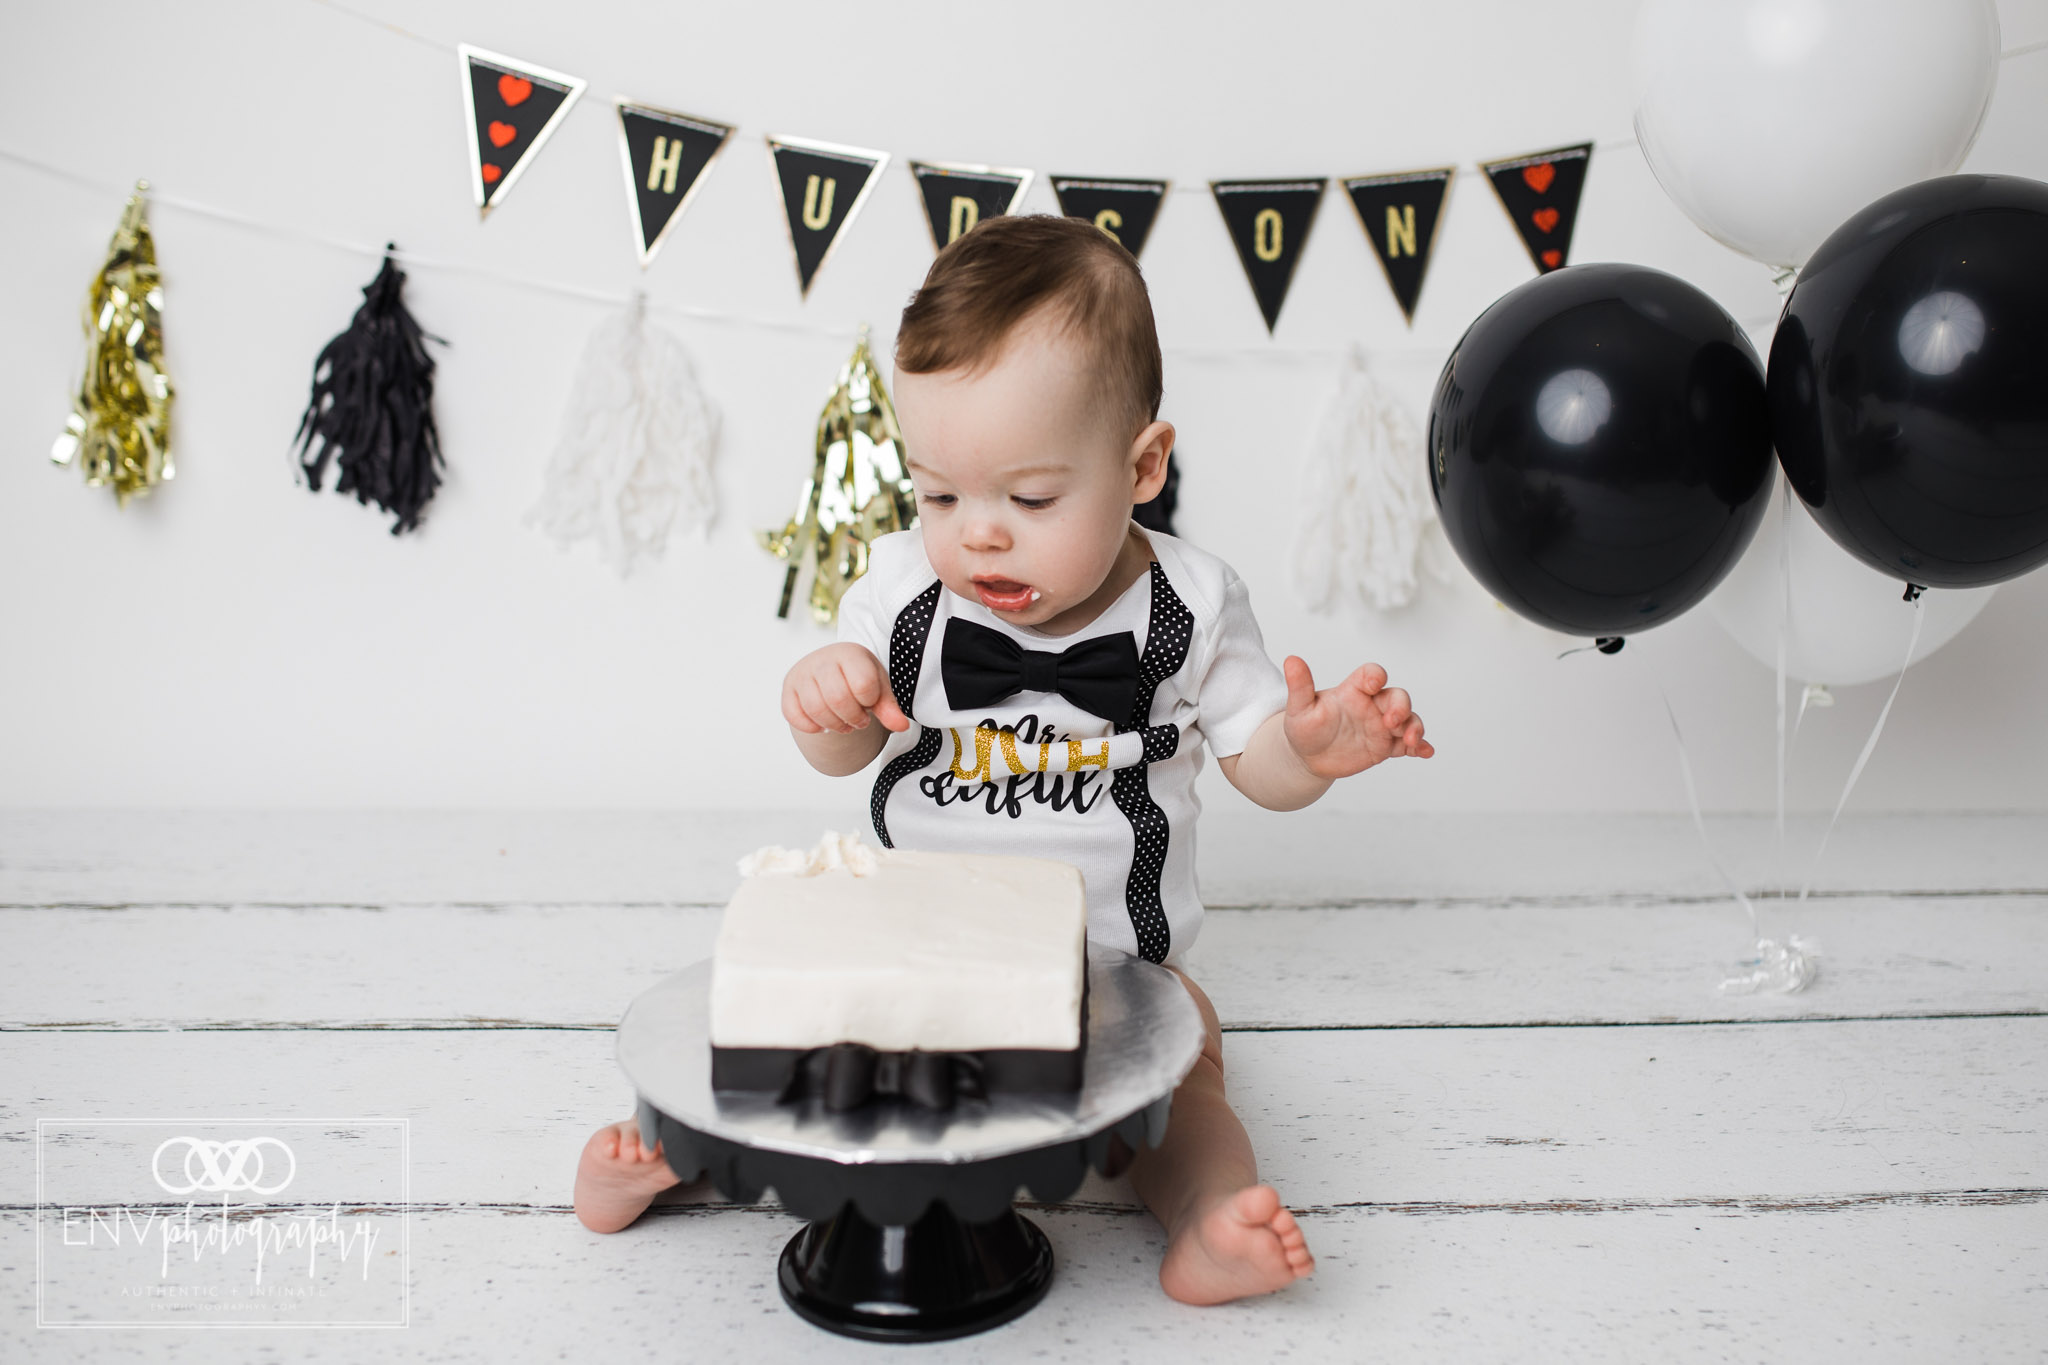 Mount Vernon Columbus Ohio Family Photographer First Birthday Cake Smash (10).jpg